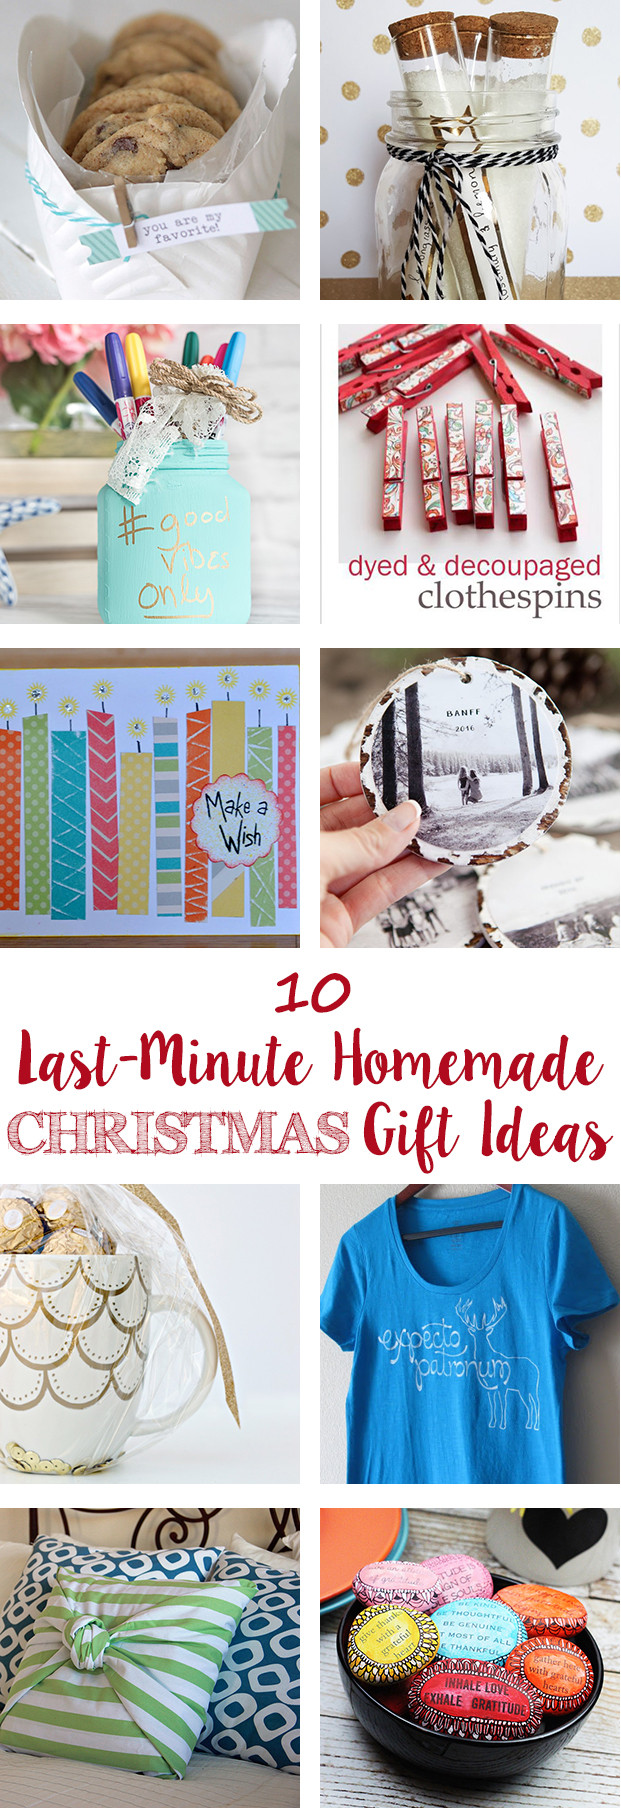 Best ideas about Last Minute DIY Christmas Gifts . Save or Pin Last Minute Homemade Christmas Gift Ideas • Rose Clearfield Now.